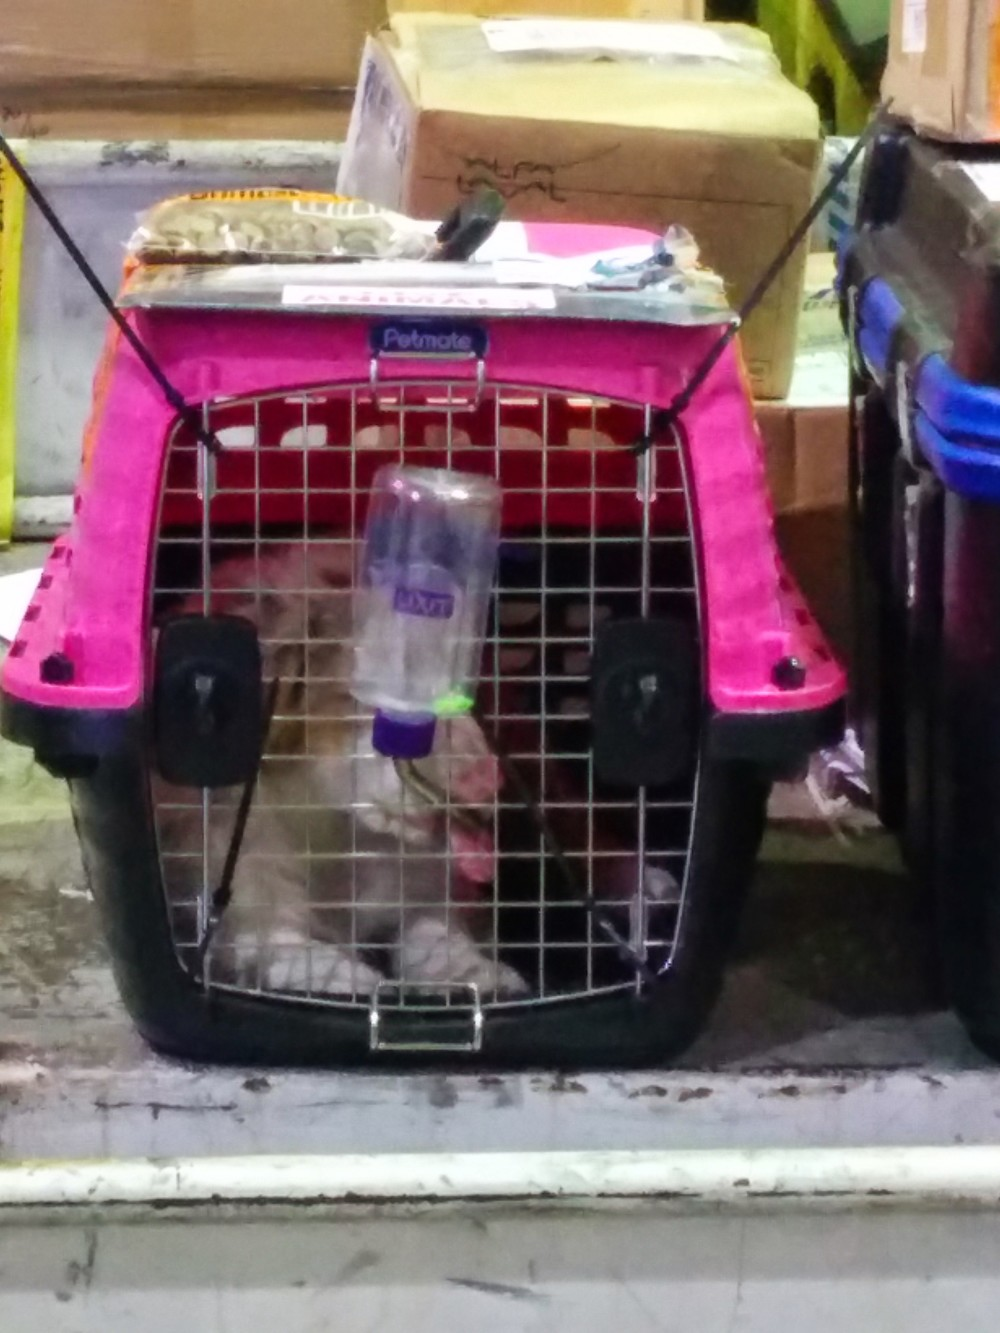 This little puppy had his / her kibble attached to the crate.  The air cargo terminal is where pets get processed for air travel, apparently.  He's sitting next to a bunch of Boeing parts for an outbound flight.